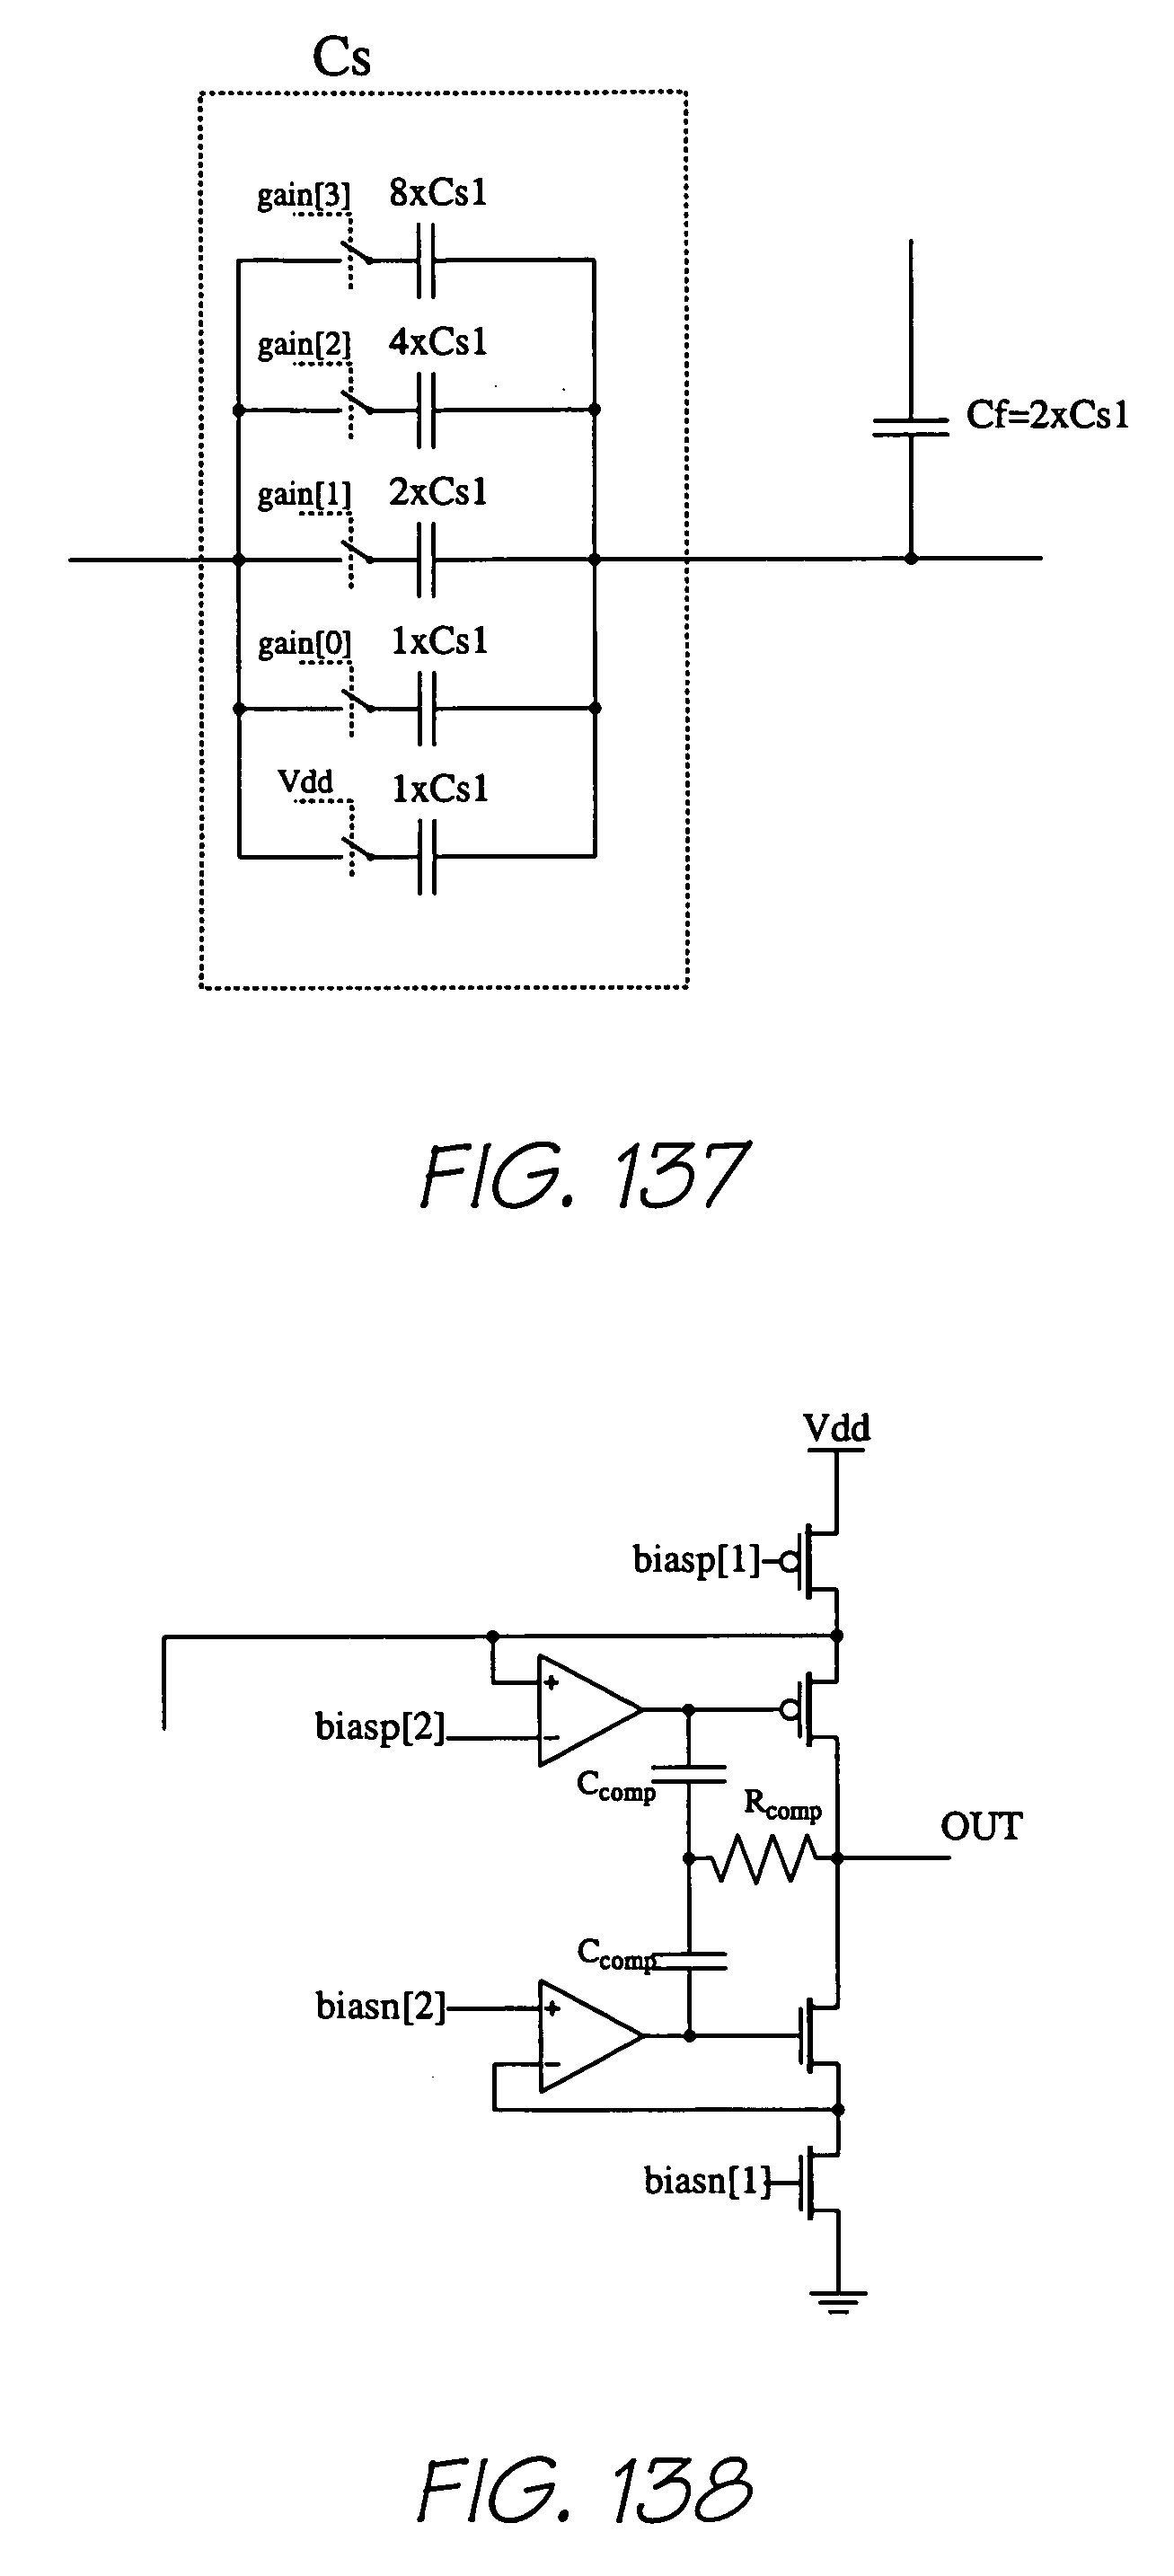 Patent Us 7128270 B2 This Circuit Will Remove The Transient Spikes And Contact Bounces From Images